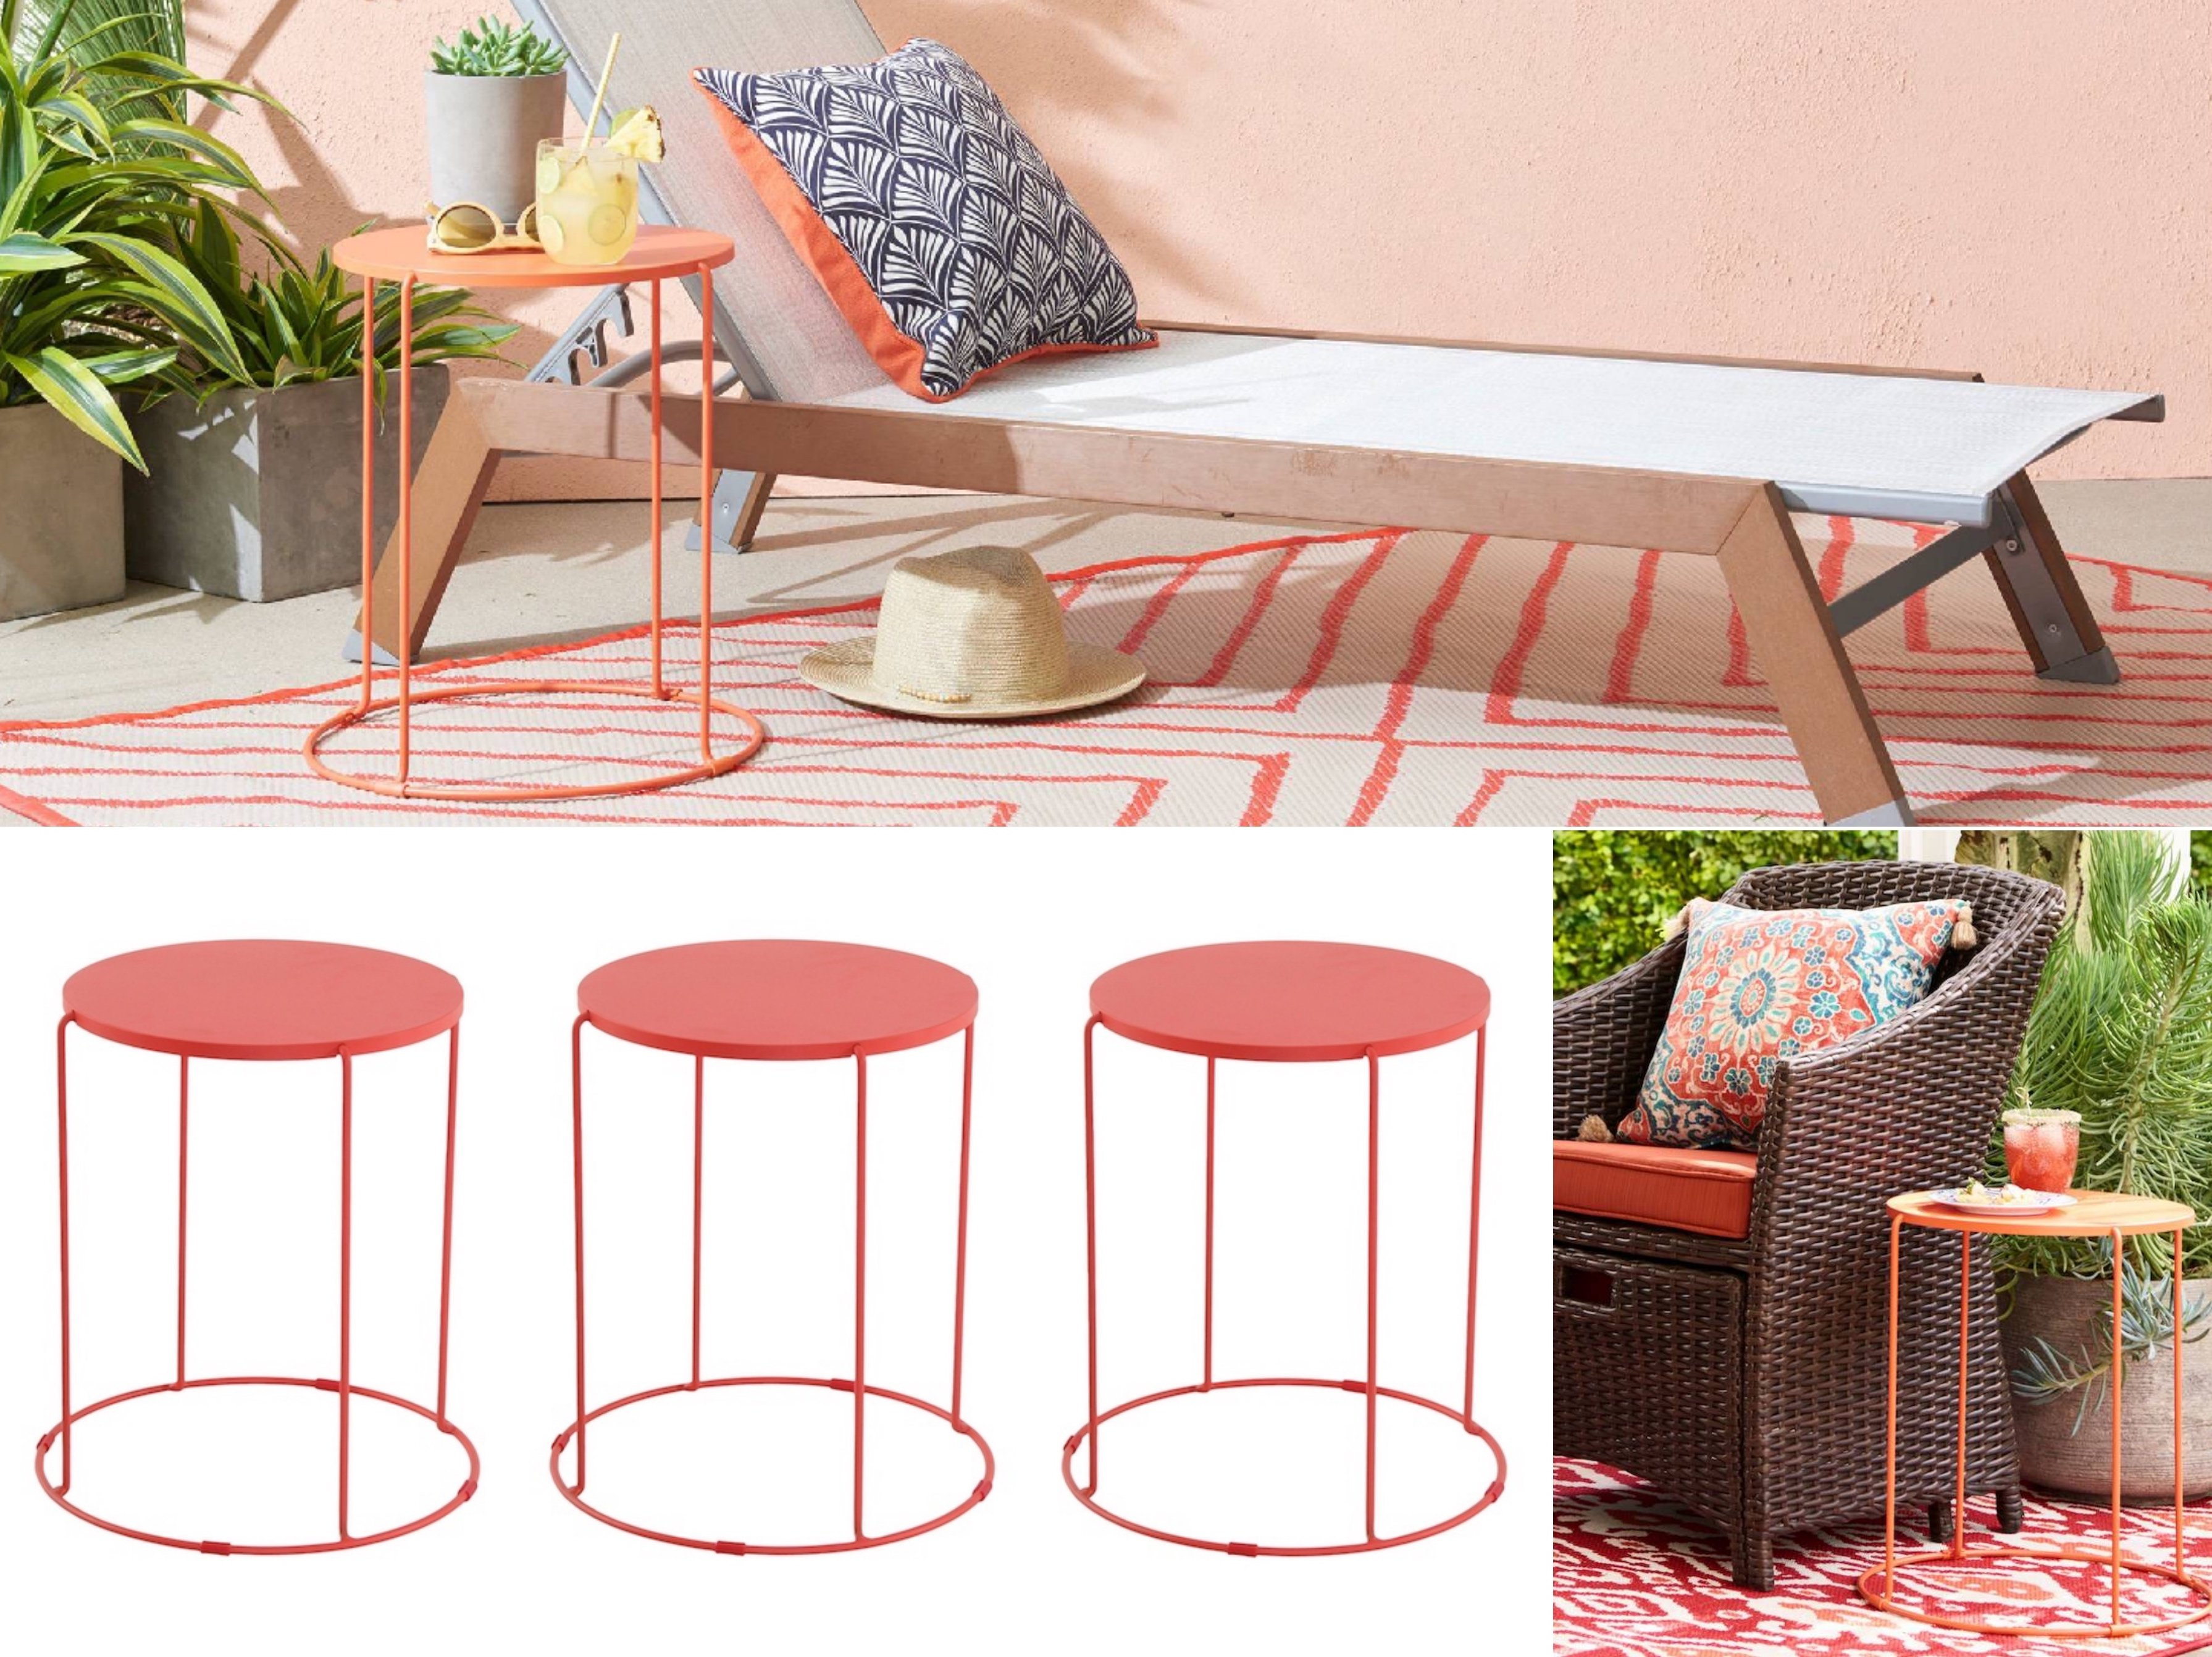 best outdoor furniture for under bob vila side table brass small vinyl floor door strip white wood nightstand long black console rattan mercury glass lamp bunnings patio chairs